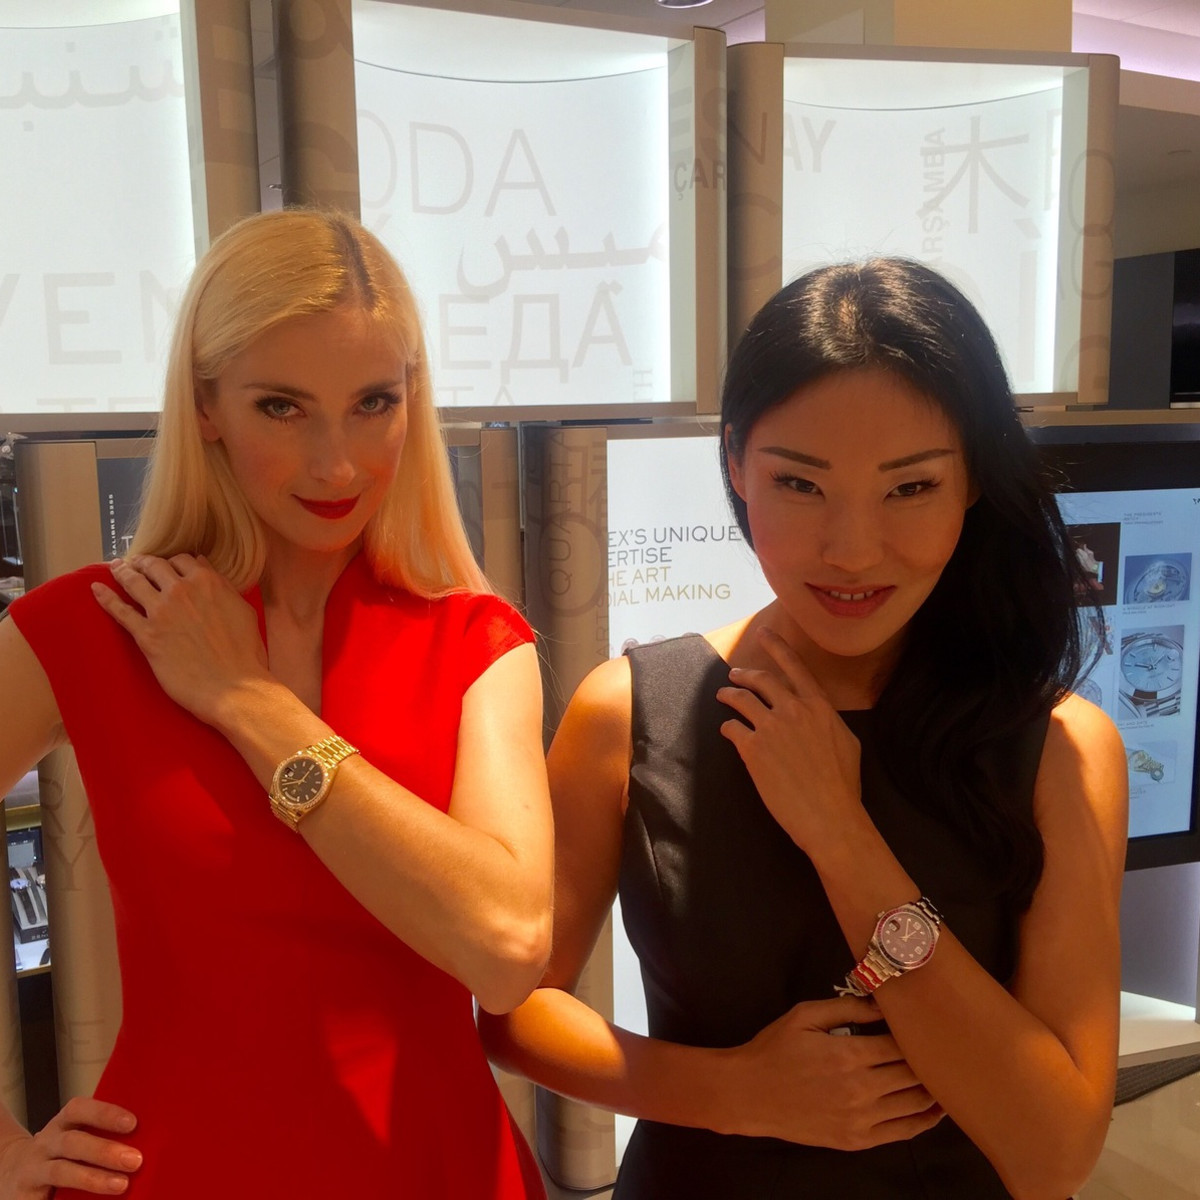 News, IW Marks Rolex Event, Dec. 2015, models